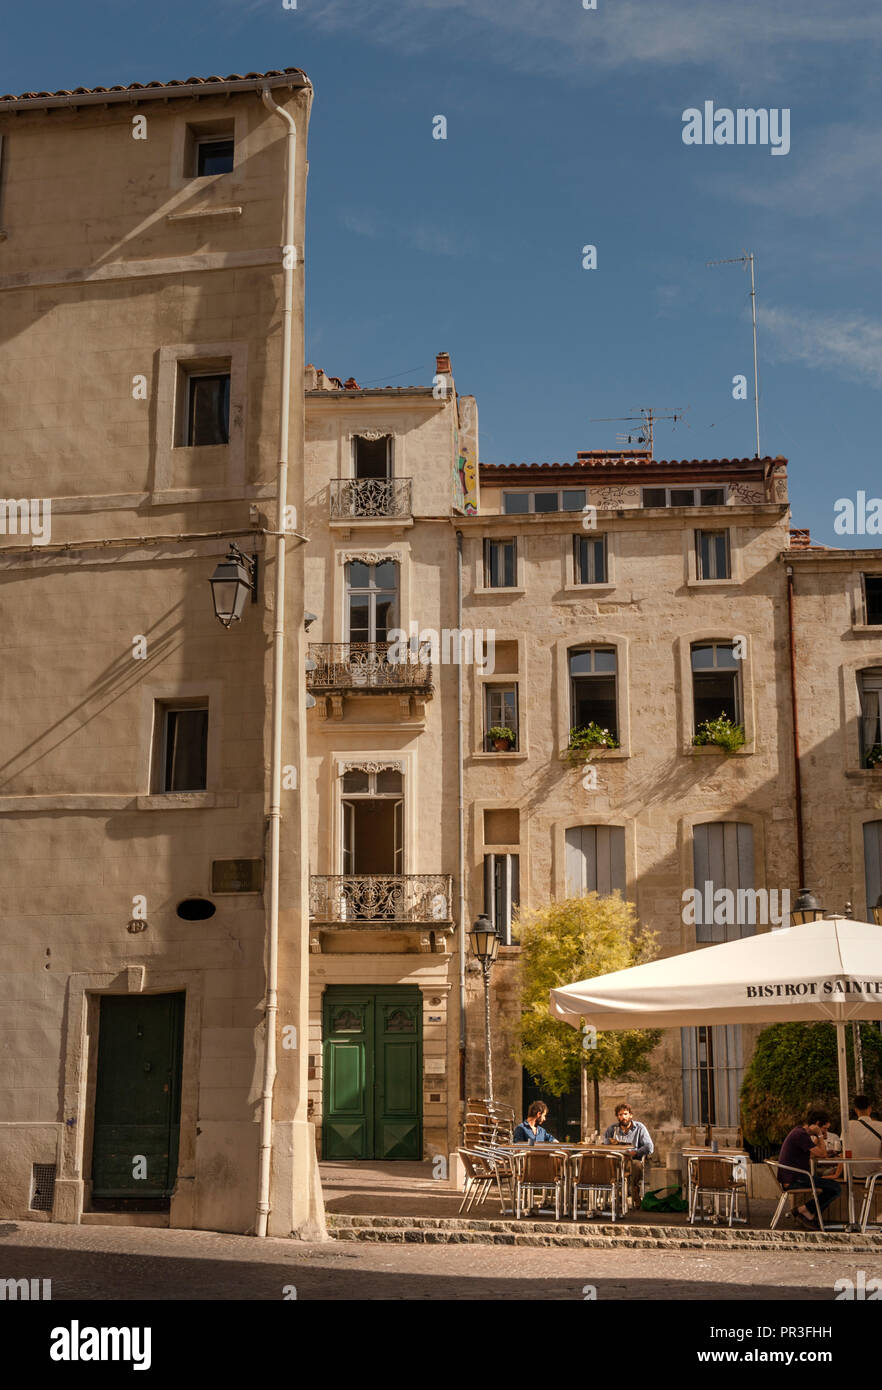 Bistro Sainte-Anne at the Place Sainte-Anne in the old heart of Montpellier, France Stock Photo